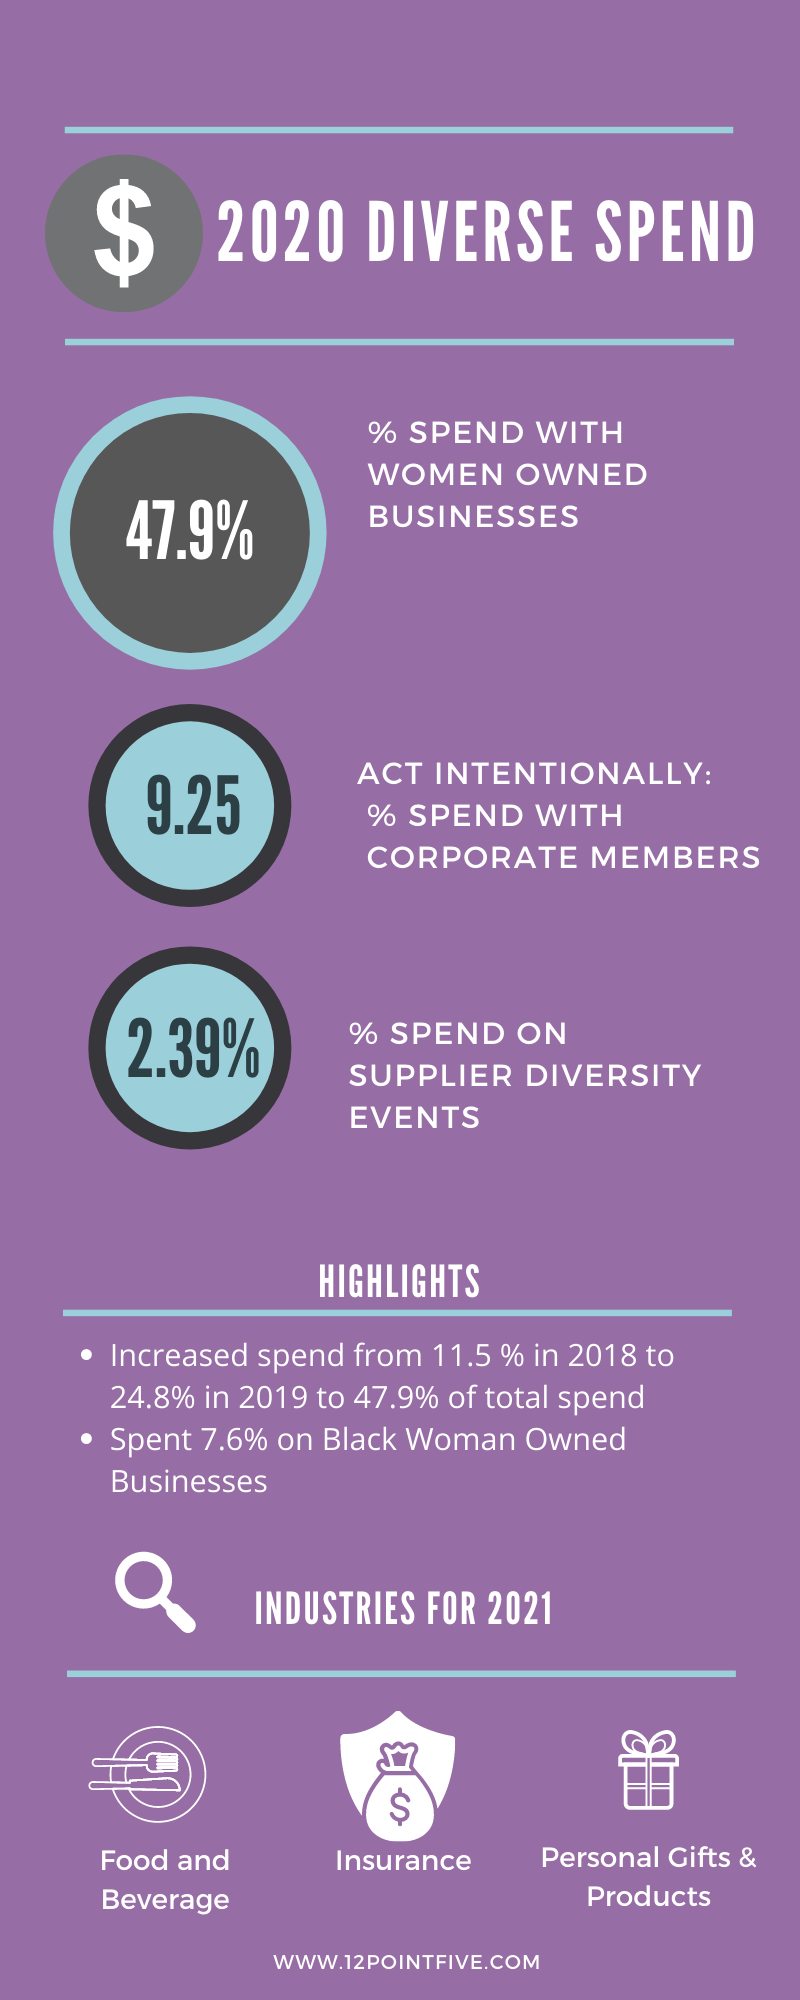 Women-Owned Wrap Up 2020: Counting Spend with Diverse Businesses